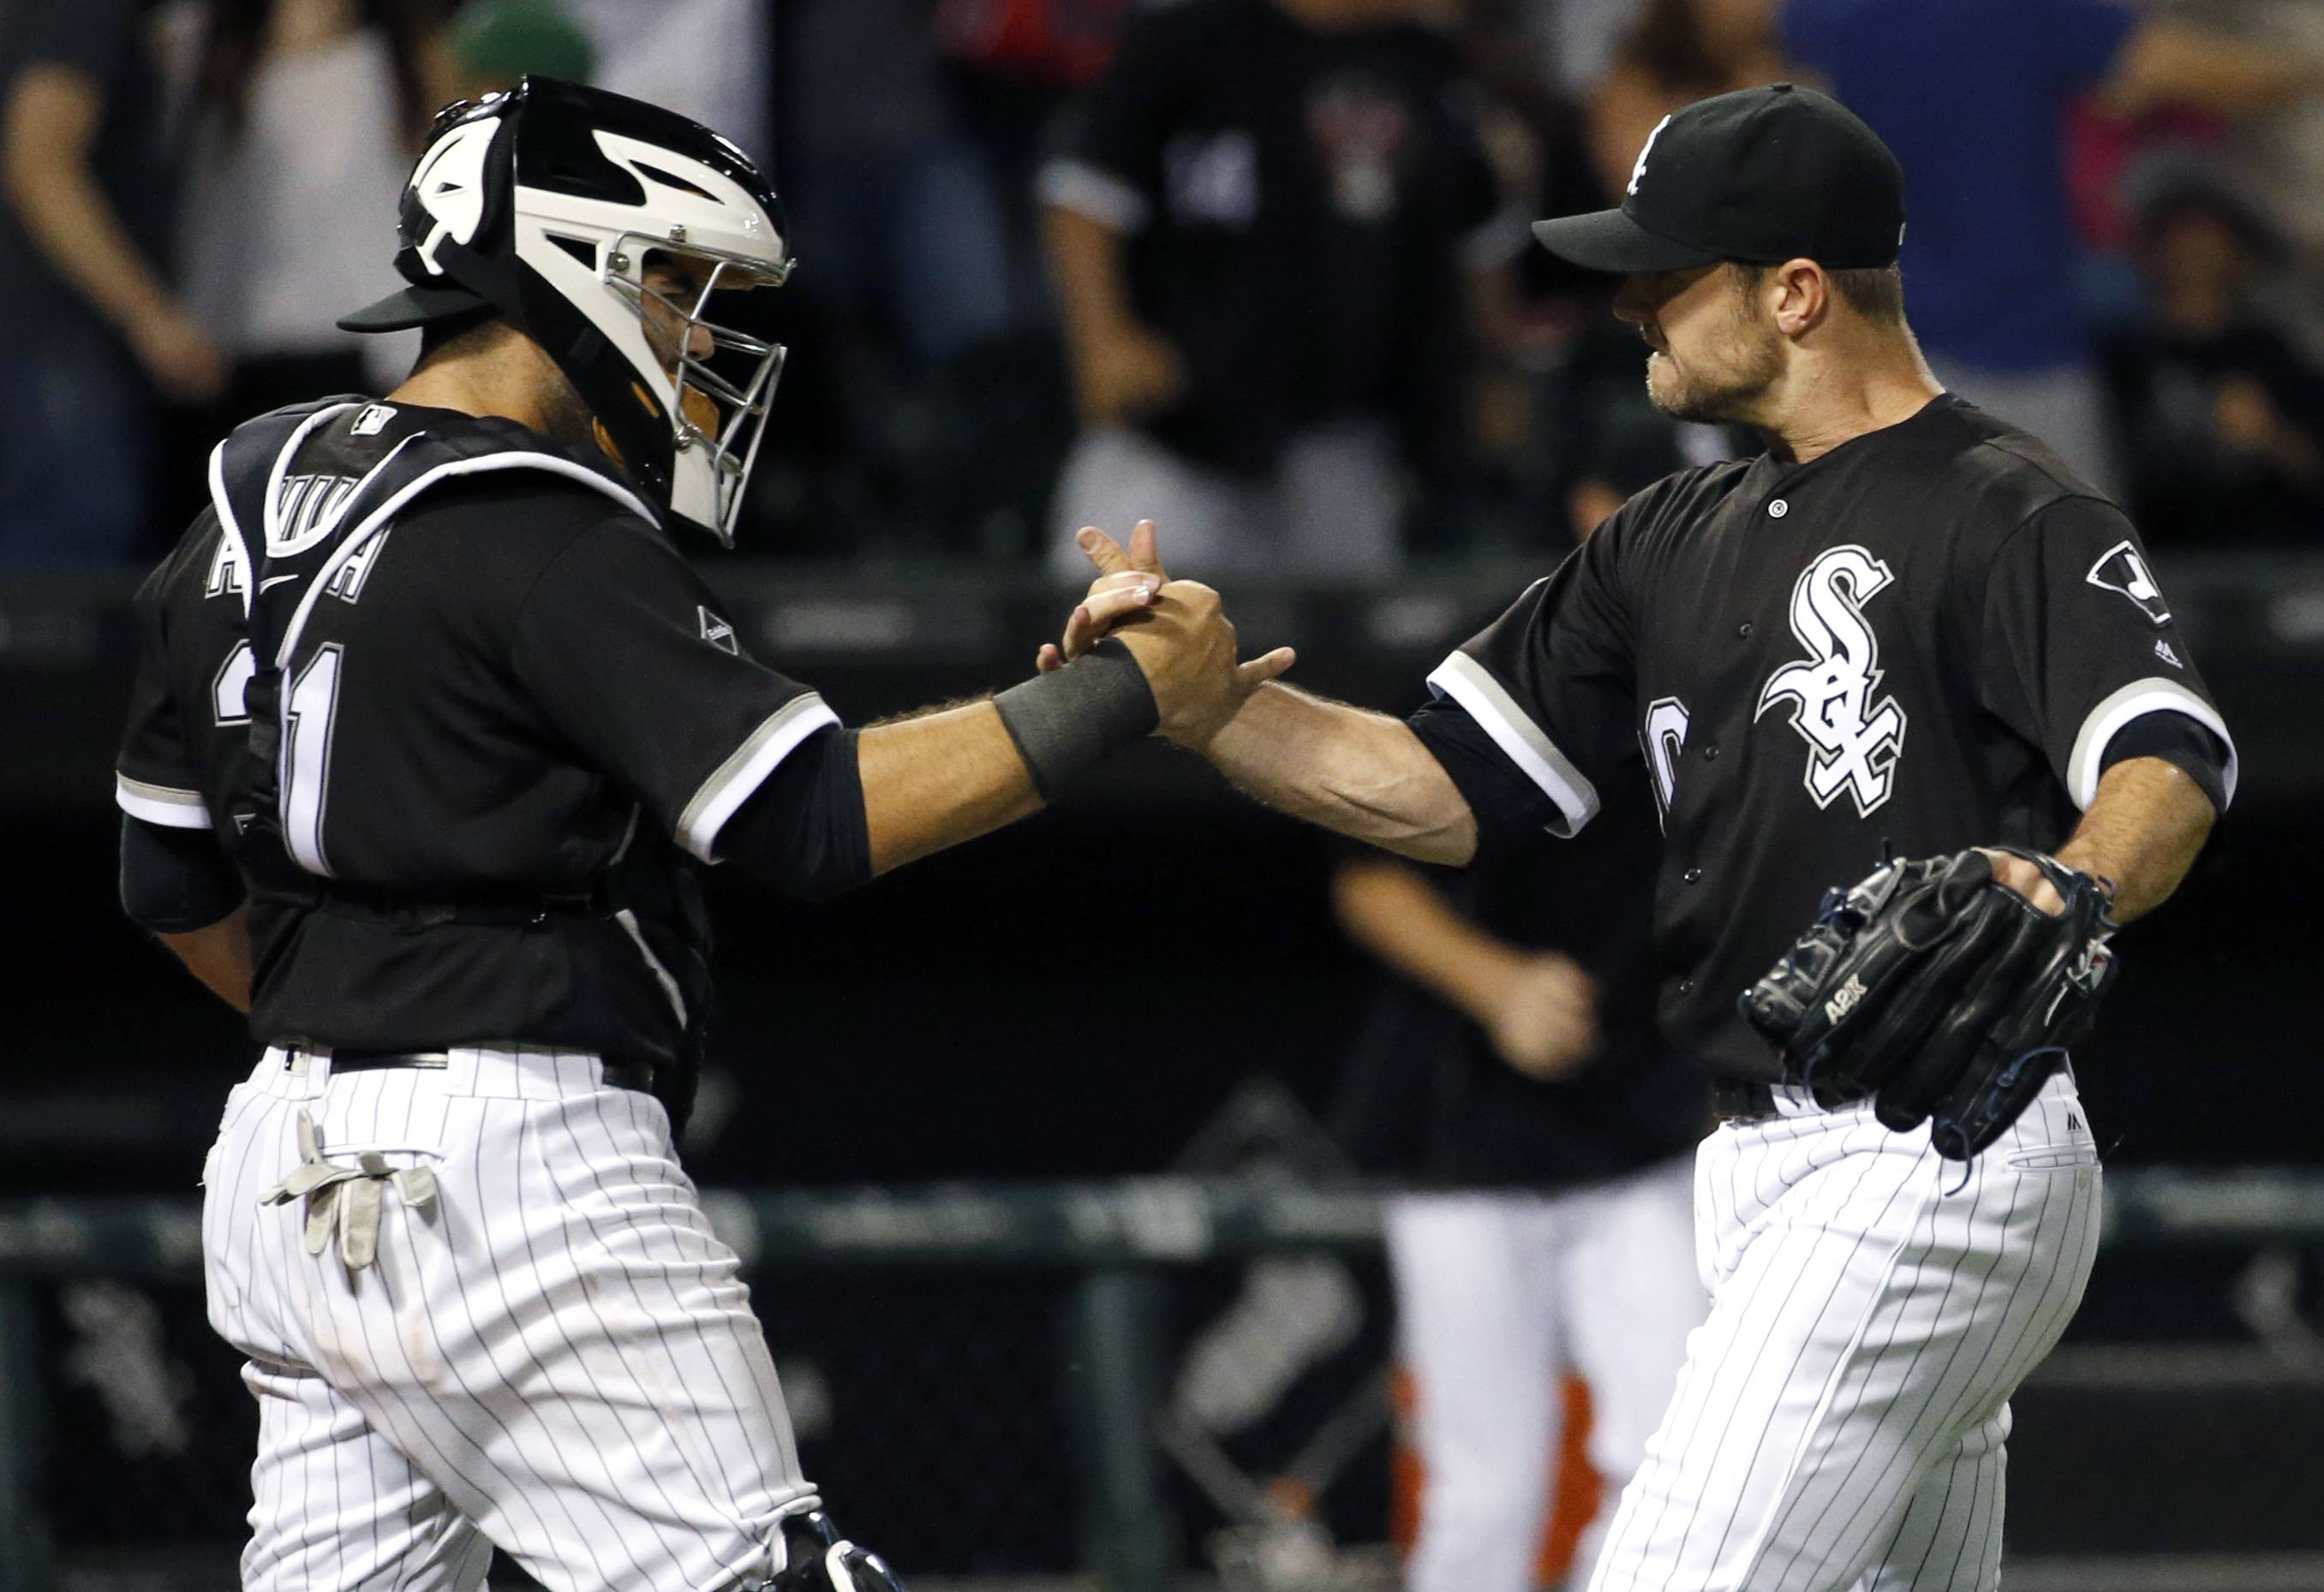 Chicago White Sox closer David Robertson, right, celebrates with catcher Alex Avila after they defeated the Toronto Blue Jays in a baseball game in Chicago, Friday, June 24, 2016. (AP Photo/Nam Y. Huh)